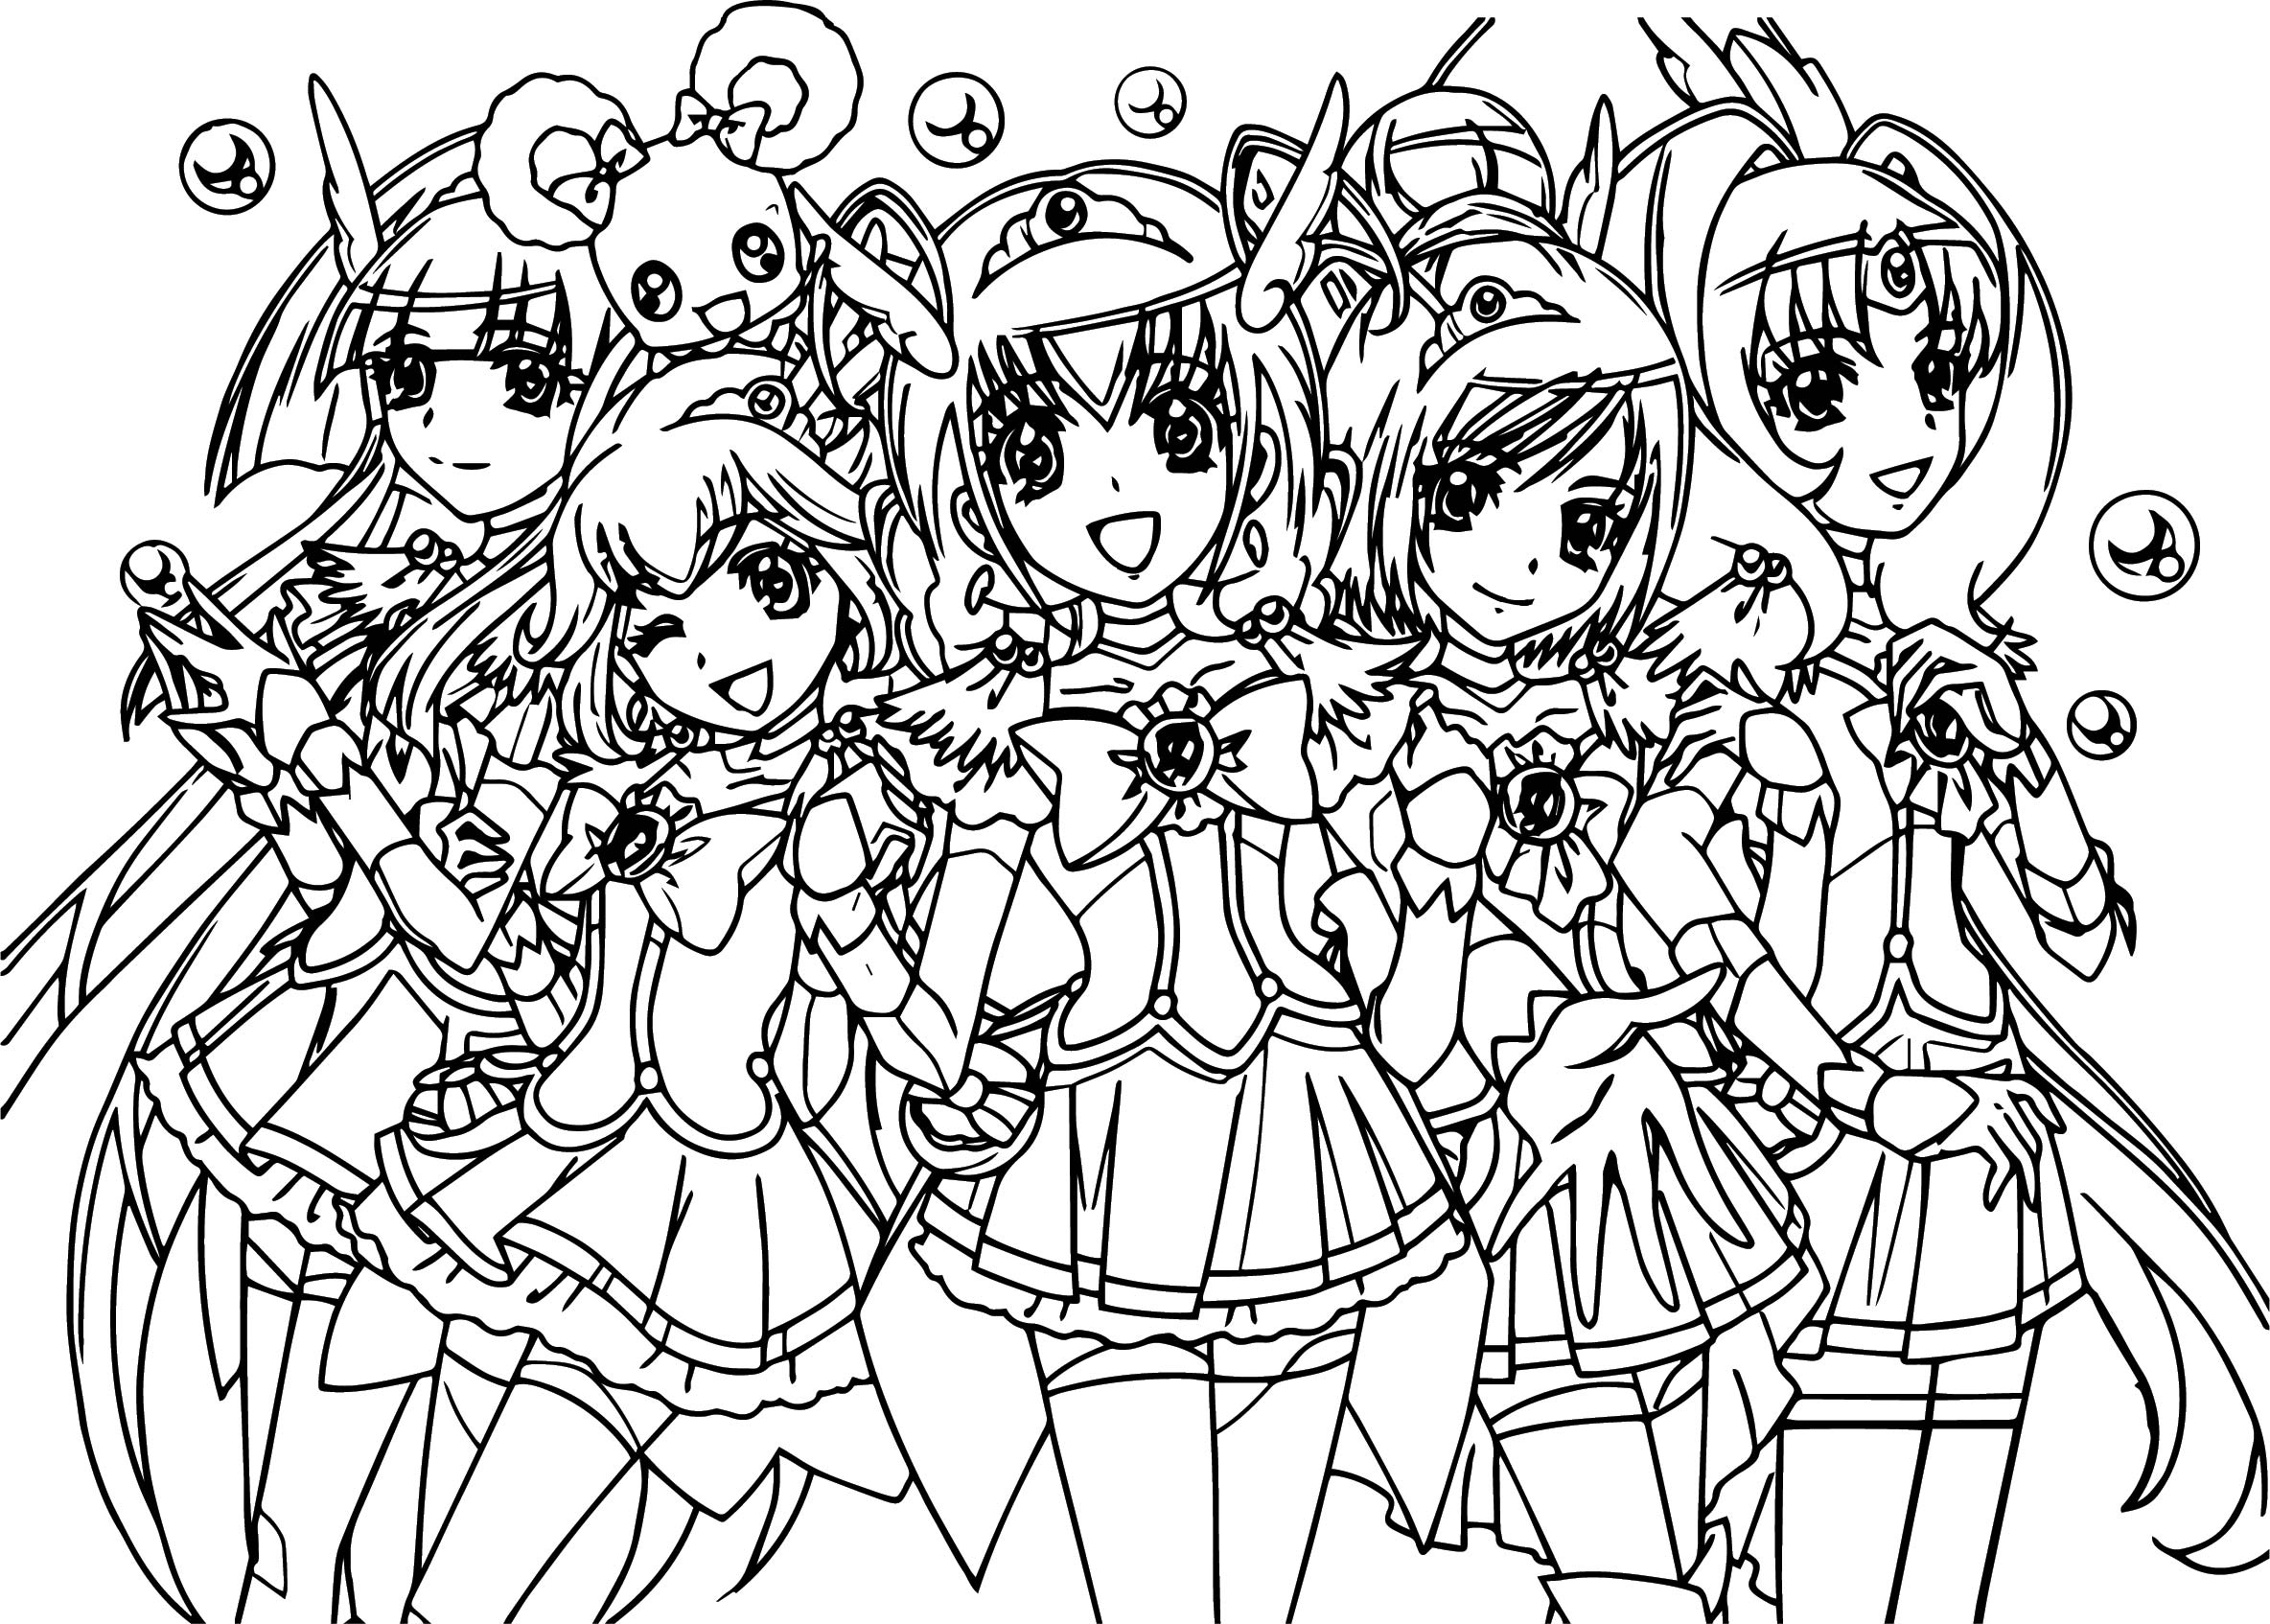 Glitter Force Coloring Pages Smile Precure Glitter Force Team Coloring Page Wecoloringpage